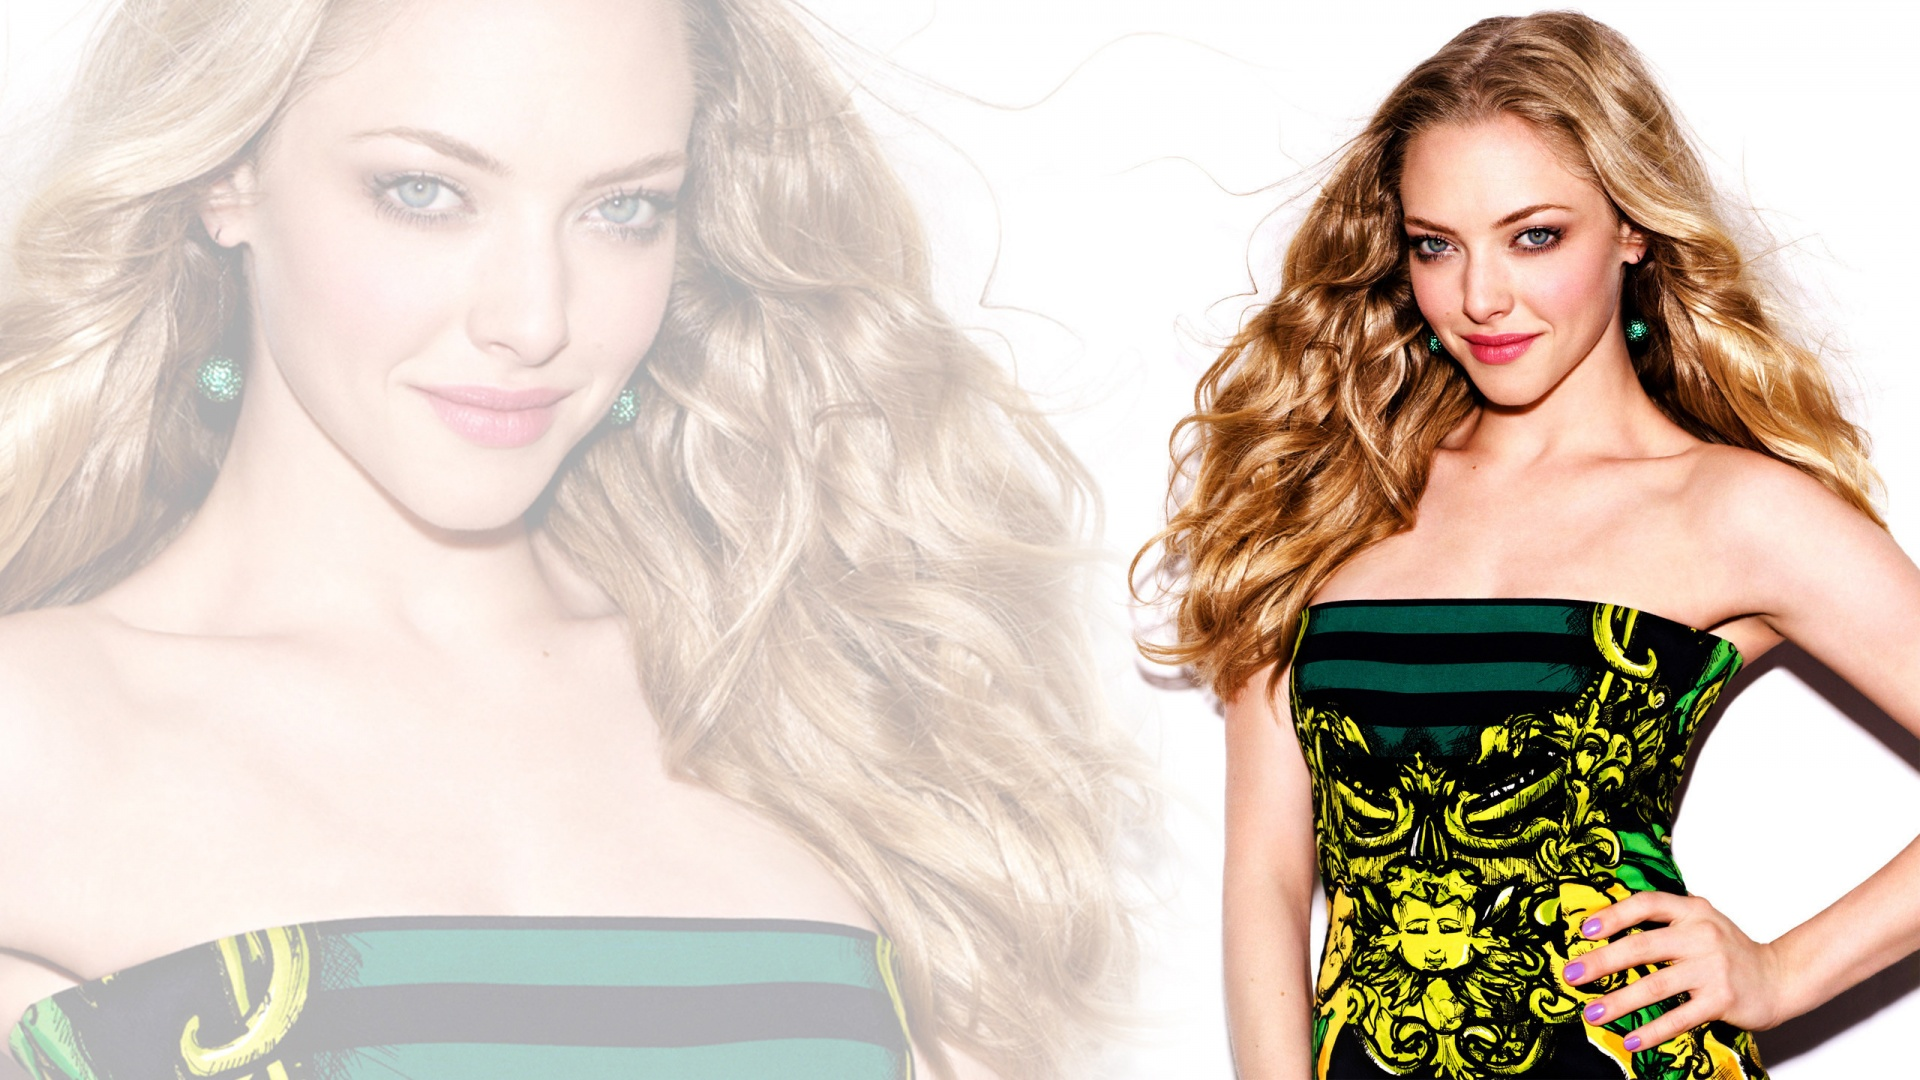 amanda seyfried images hd A5